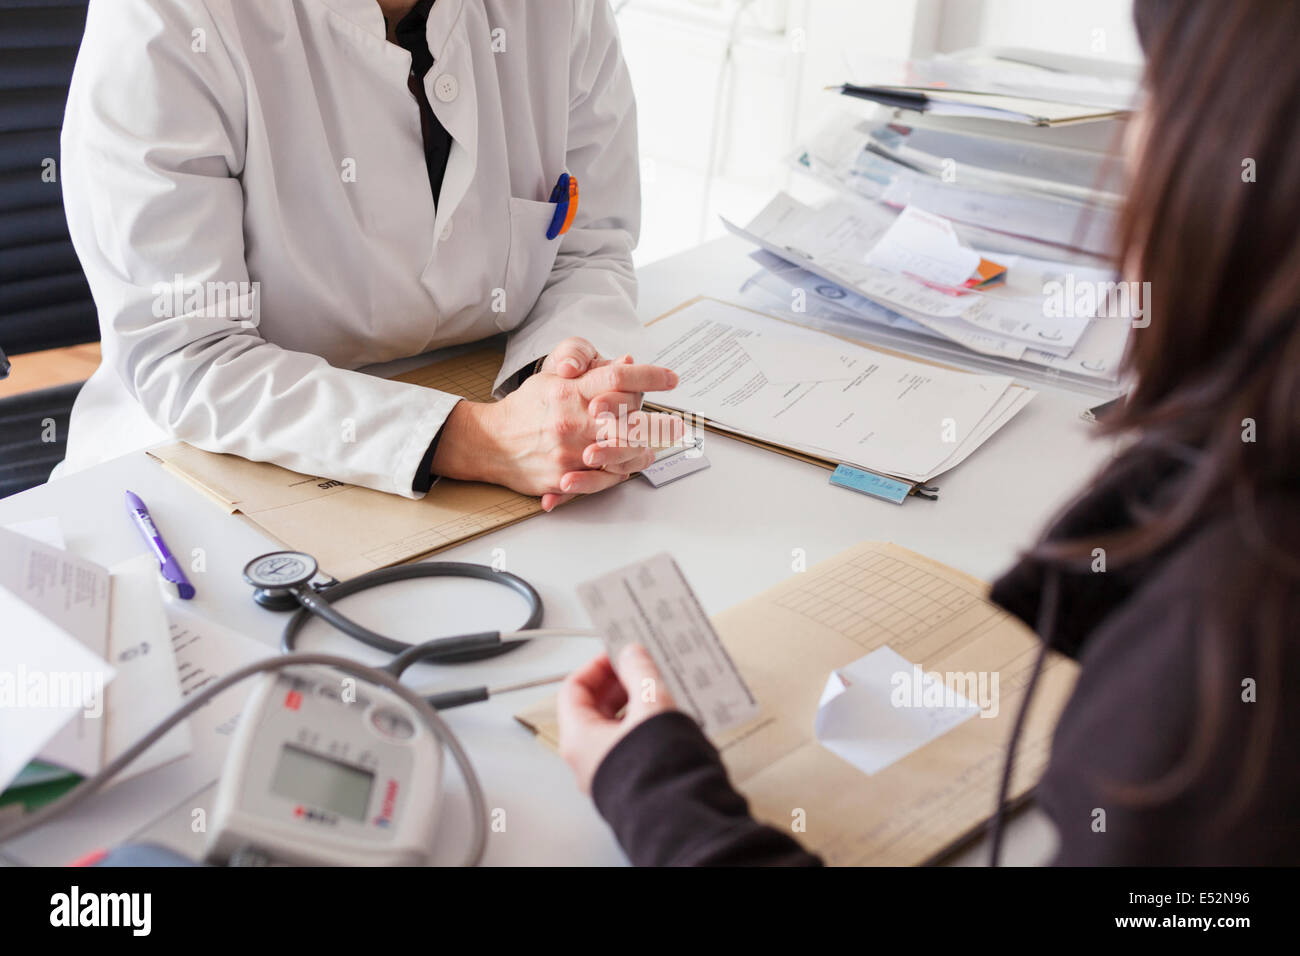 Doctor prescribes medication to patient - Stock Image